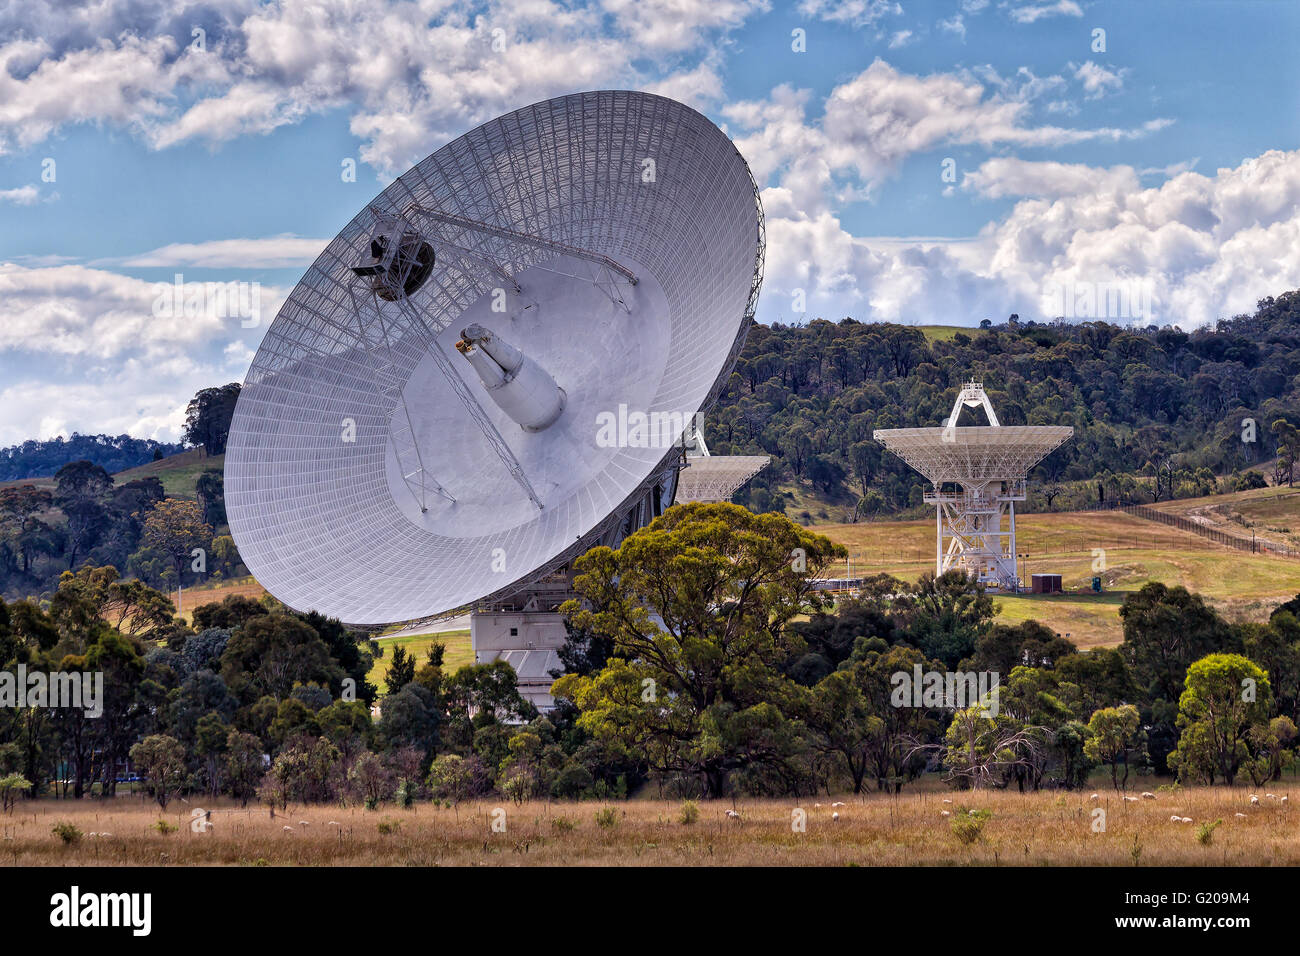 Close up of giant radio telescope antenna array of CSIRO - part of NASA space communication network in Tidbinbilla - Stock Image